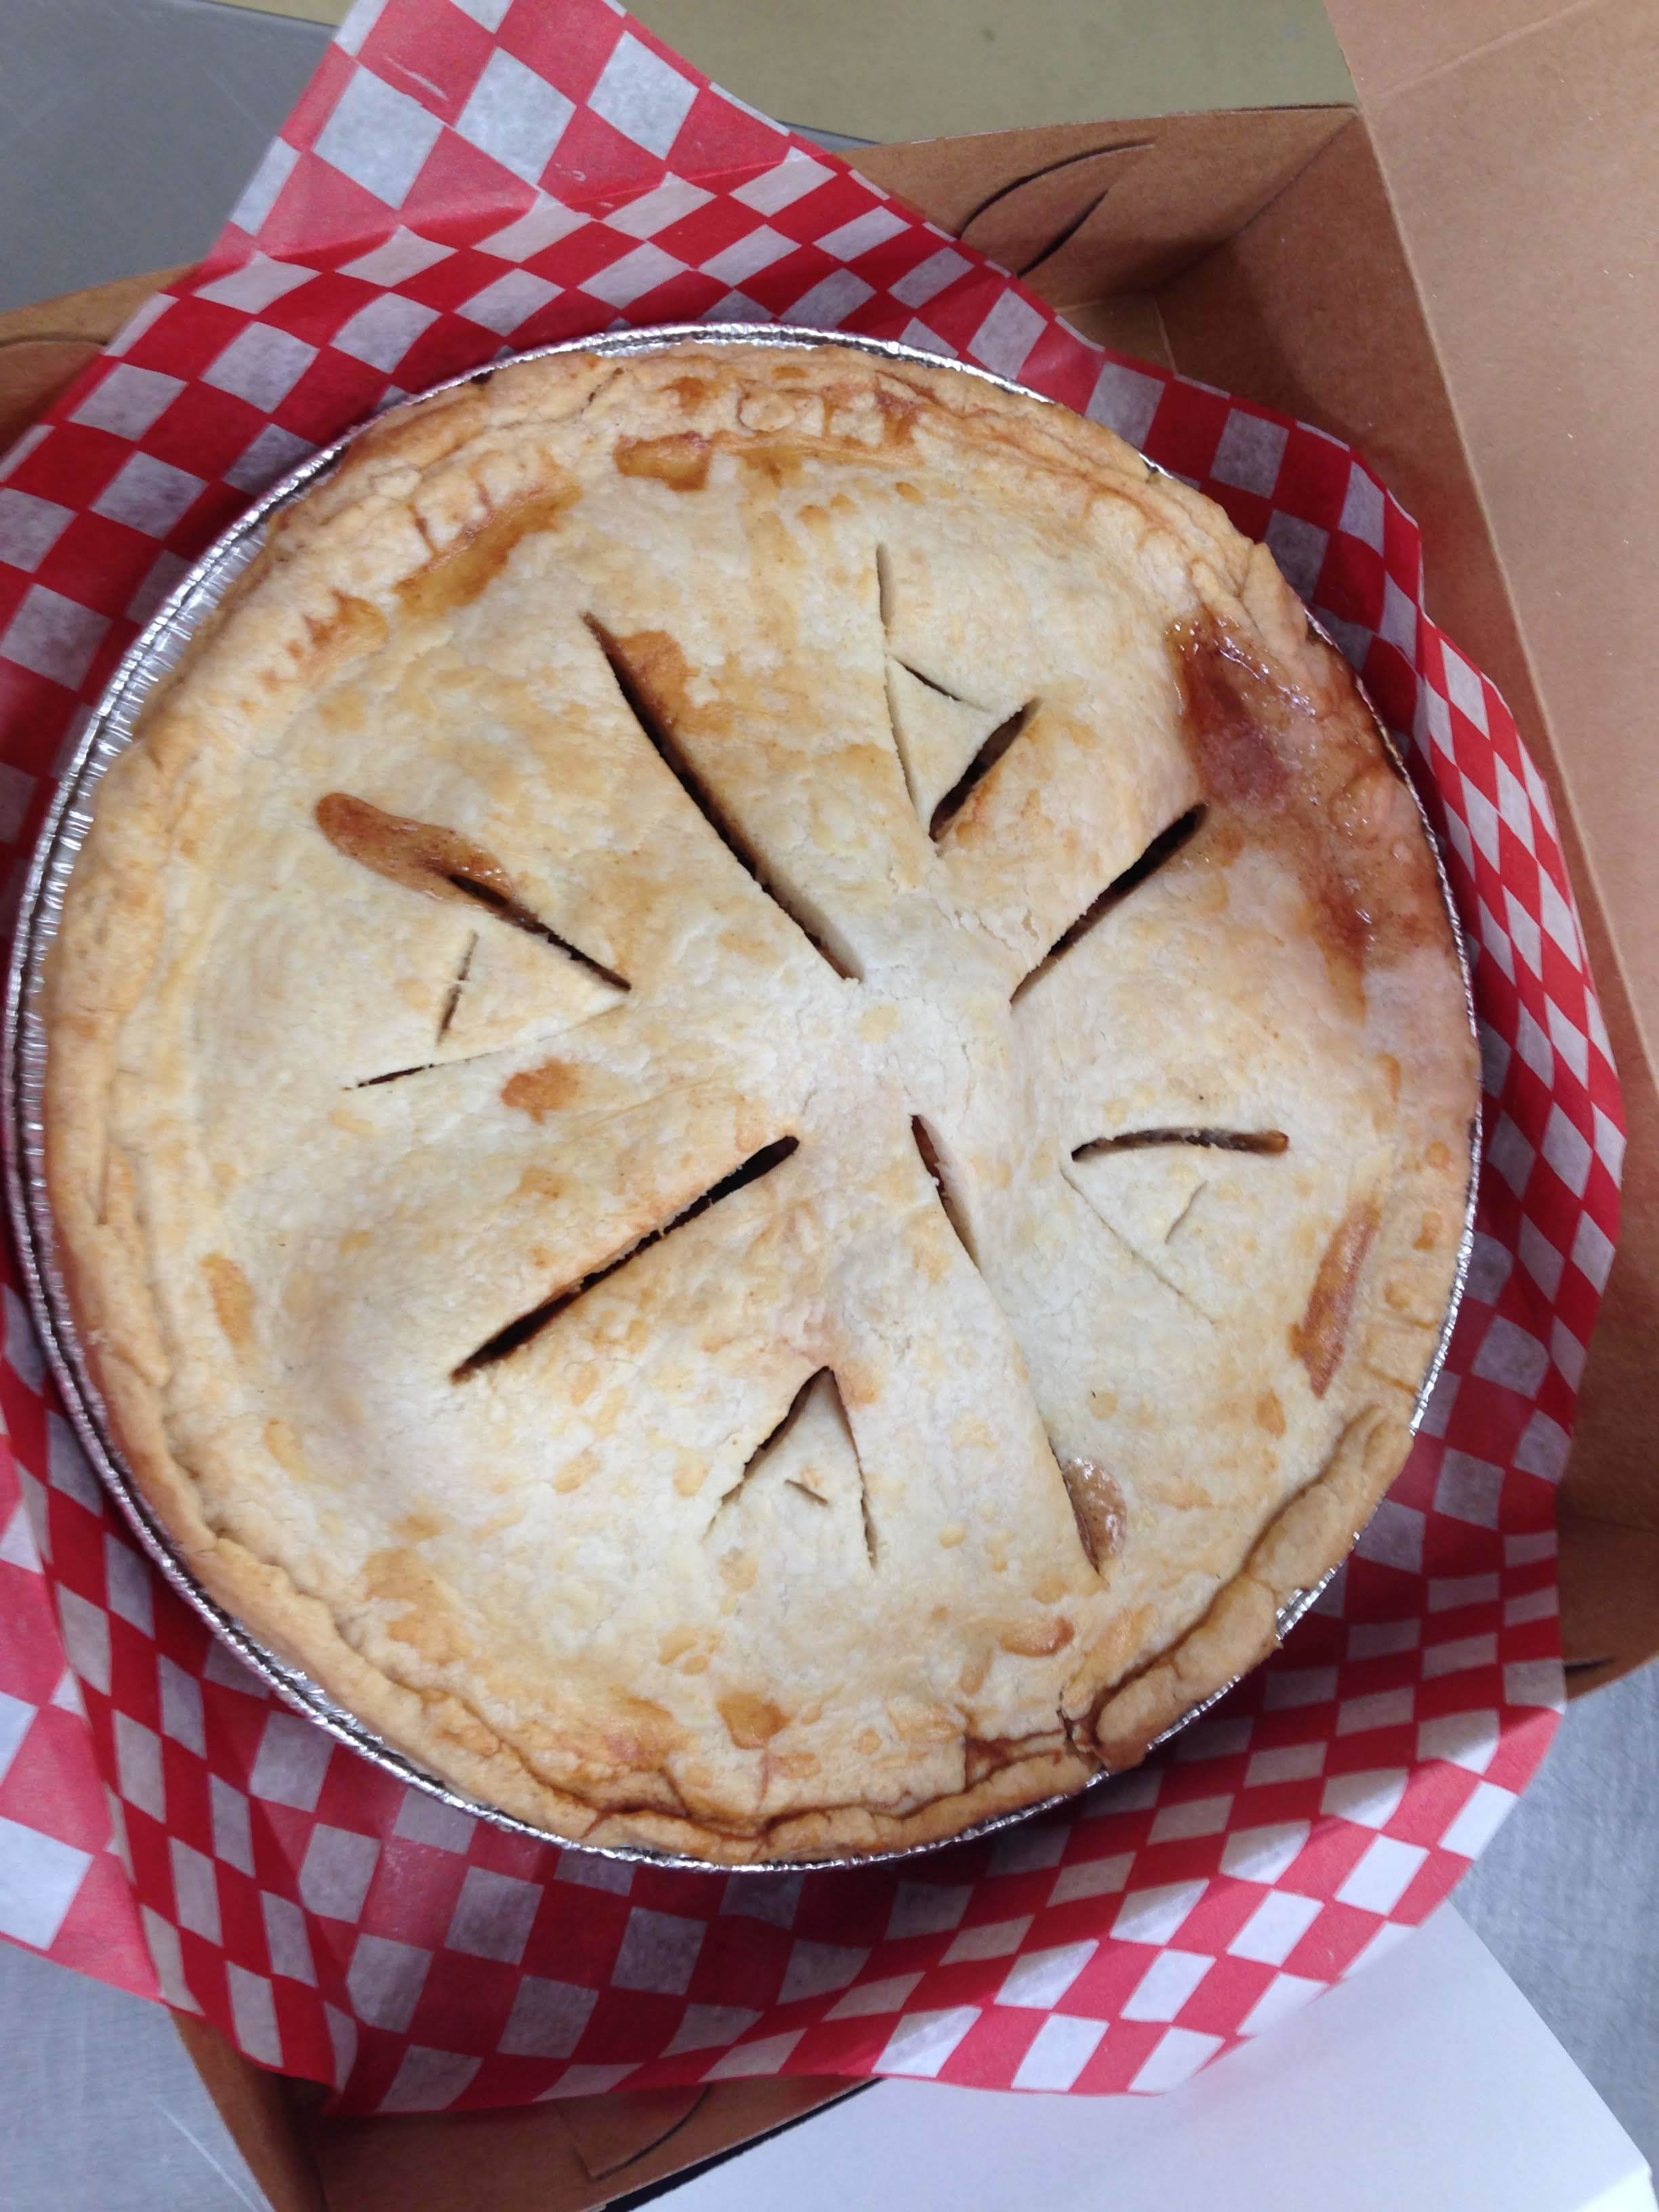 Baked Goods - - Pies- Butter Tarts- Nut Rings- Peanut Butter Brittle- Apple Crisp- Chicken and Beef Pot Pies